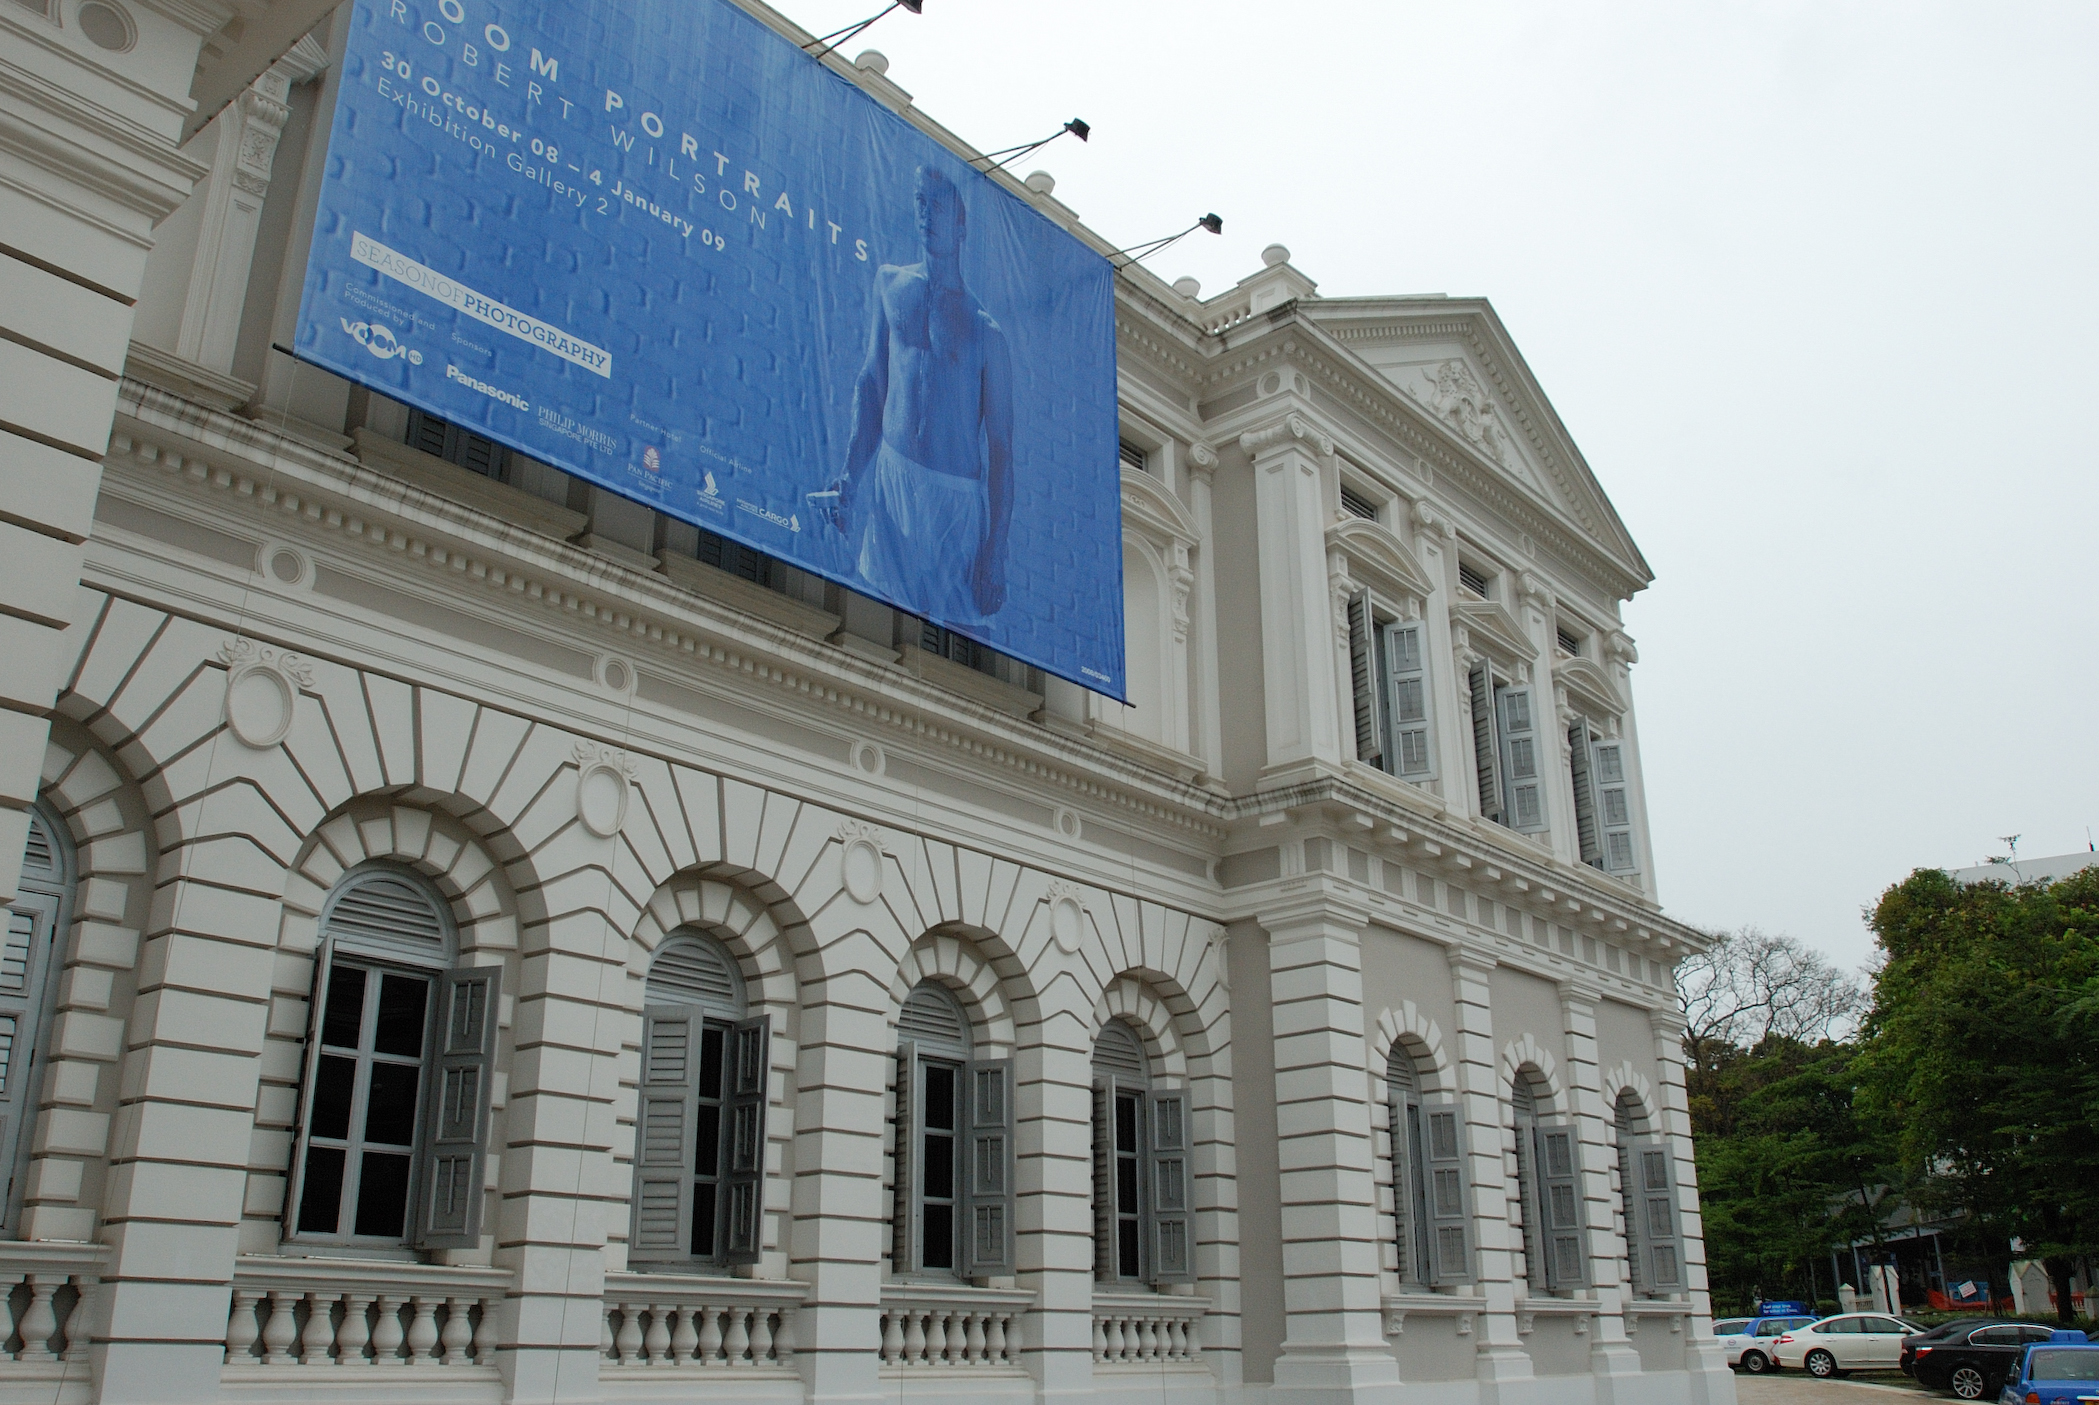 """NATIONAL MUSEUM OF SINGAPORE   Of the museums that I had a chance to visit in Singapore, this was by far my favorite. Mostly because there is a fantastic walkthrough exhibit of Singapore's history that did an excellent job of bringing context to Singapore's tumultuous history, and provided a clear idea of how extraordinary it's very existence as it is seen today really is.  Photo Credit: """" The National Museum of Singapore """" by  Thomas Lok"""